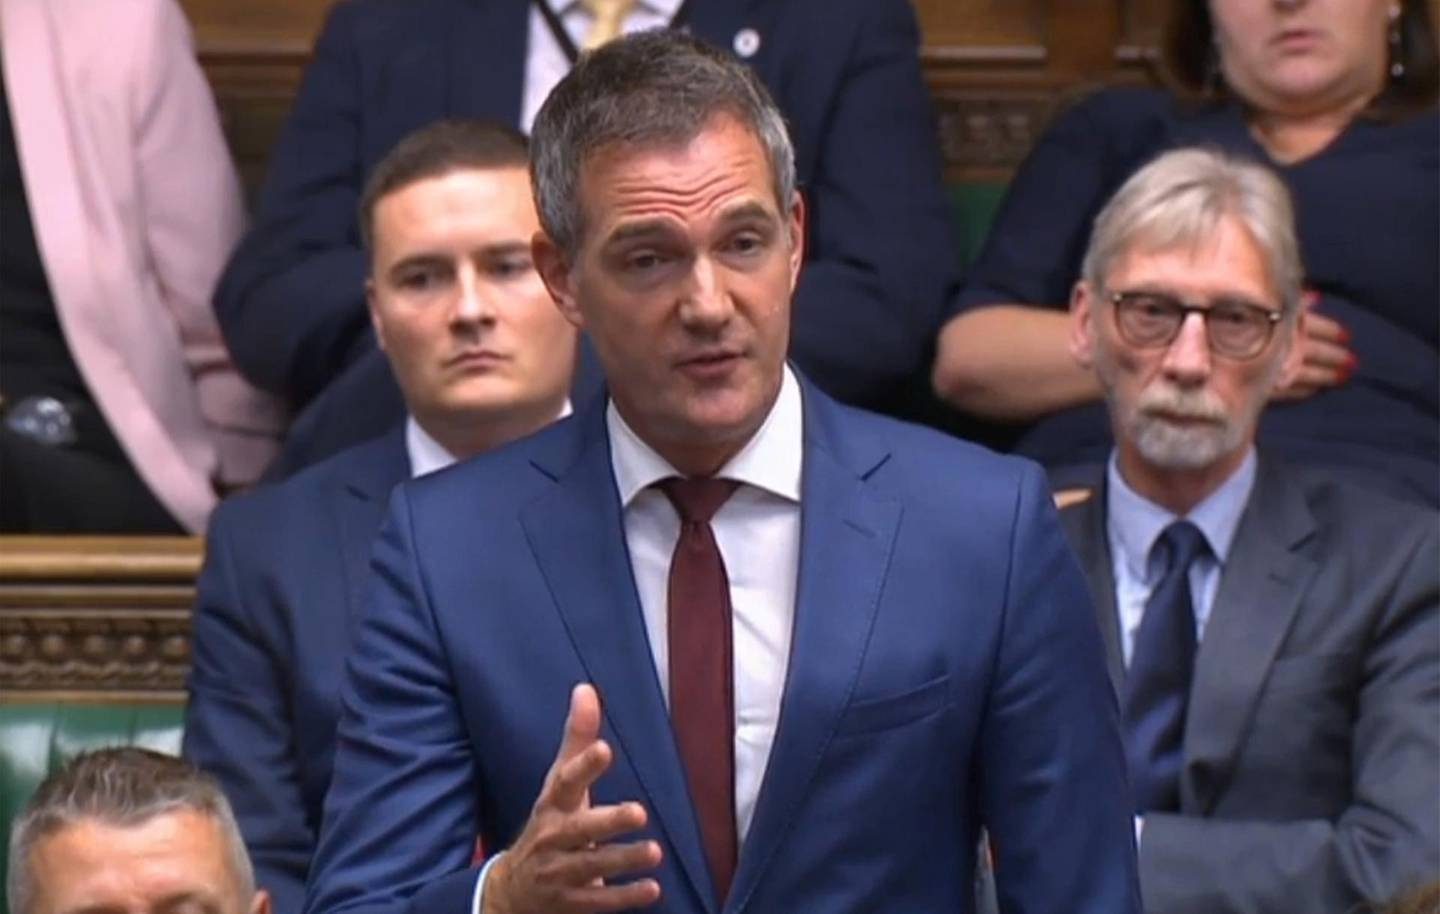 """A video grab from footage broadcast by the UK Parliament's Parliamentary Recording Unit (PRU) shows Labour MP Peter Kyle speaking in the debate on the Brexit deal in the House of Commons in London on October 19, 2019. - British MPs gather Saturday for a historic vote on Prime Minister Boris Johnson's Brexit deal, a decision that could see the UK leave the EU this month or plunge the country into fresh uncertainty. (Photo by - / PRU / AFP) / RESTRICTED TO EDITORIAL USE - MANDATORY CREDIT """" AFP PHOTO / PRU """" - NO USE FOR ENTERTAINMENT, SATIRICAL, MARKETING OR ADVERTISING CAMPAIGNS"""